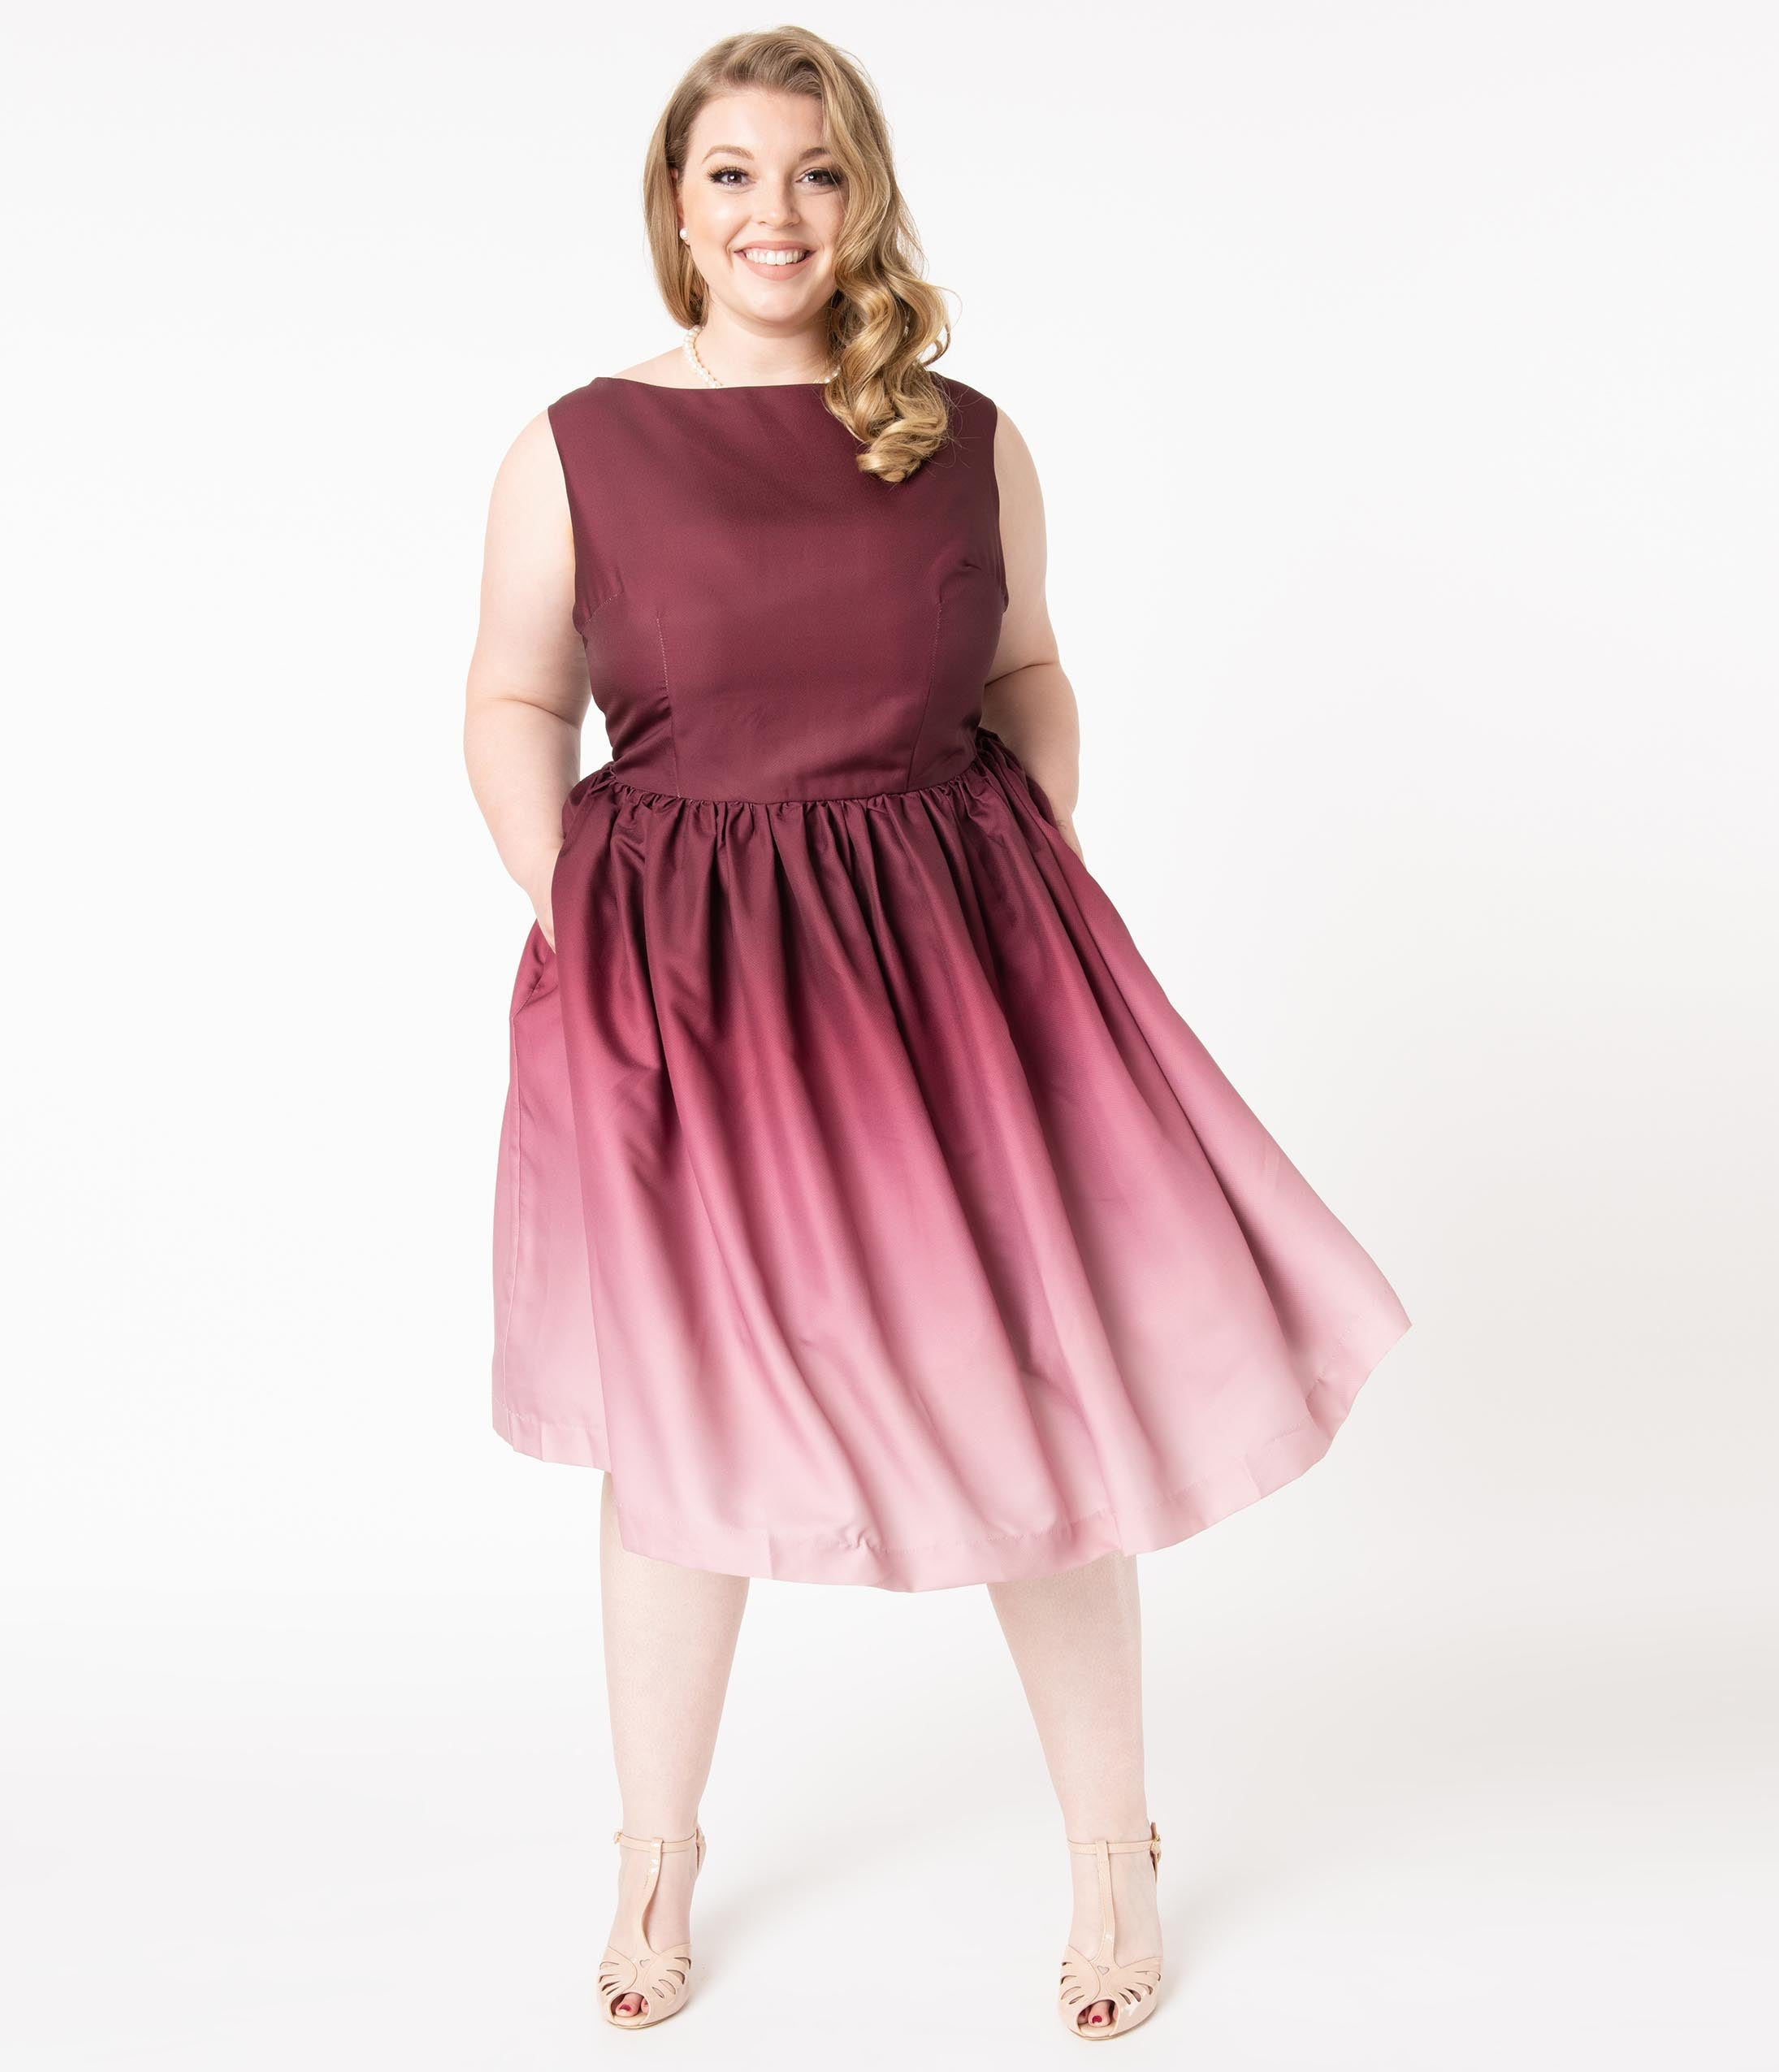 Vintage Evening Dresses and Formal Evening Gowns Plus Size Burgundy Ombre Audrey Swing Dress $98.00 AT vintagedancer.com